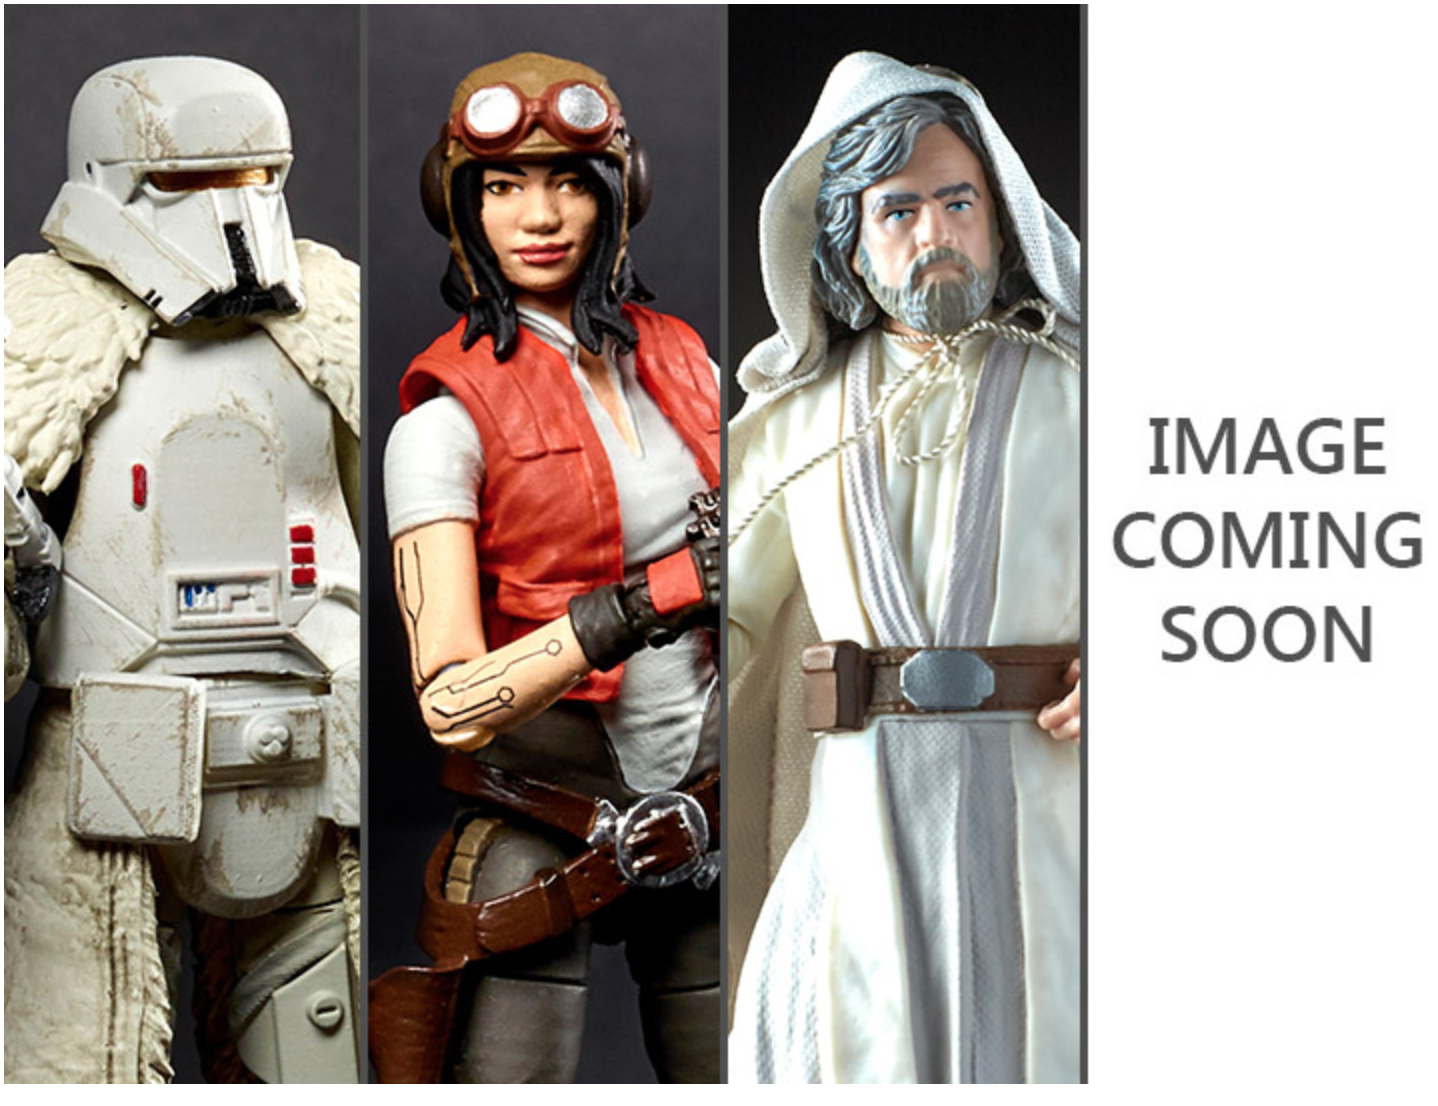 Hasbro Star Wars: The Vintage Collection 2018 Wave 3 Figure Pre-Orders